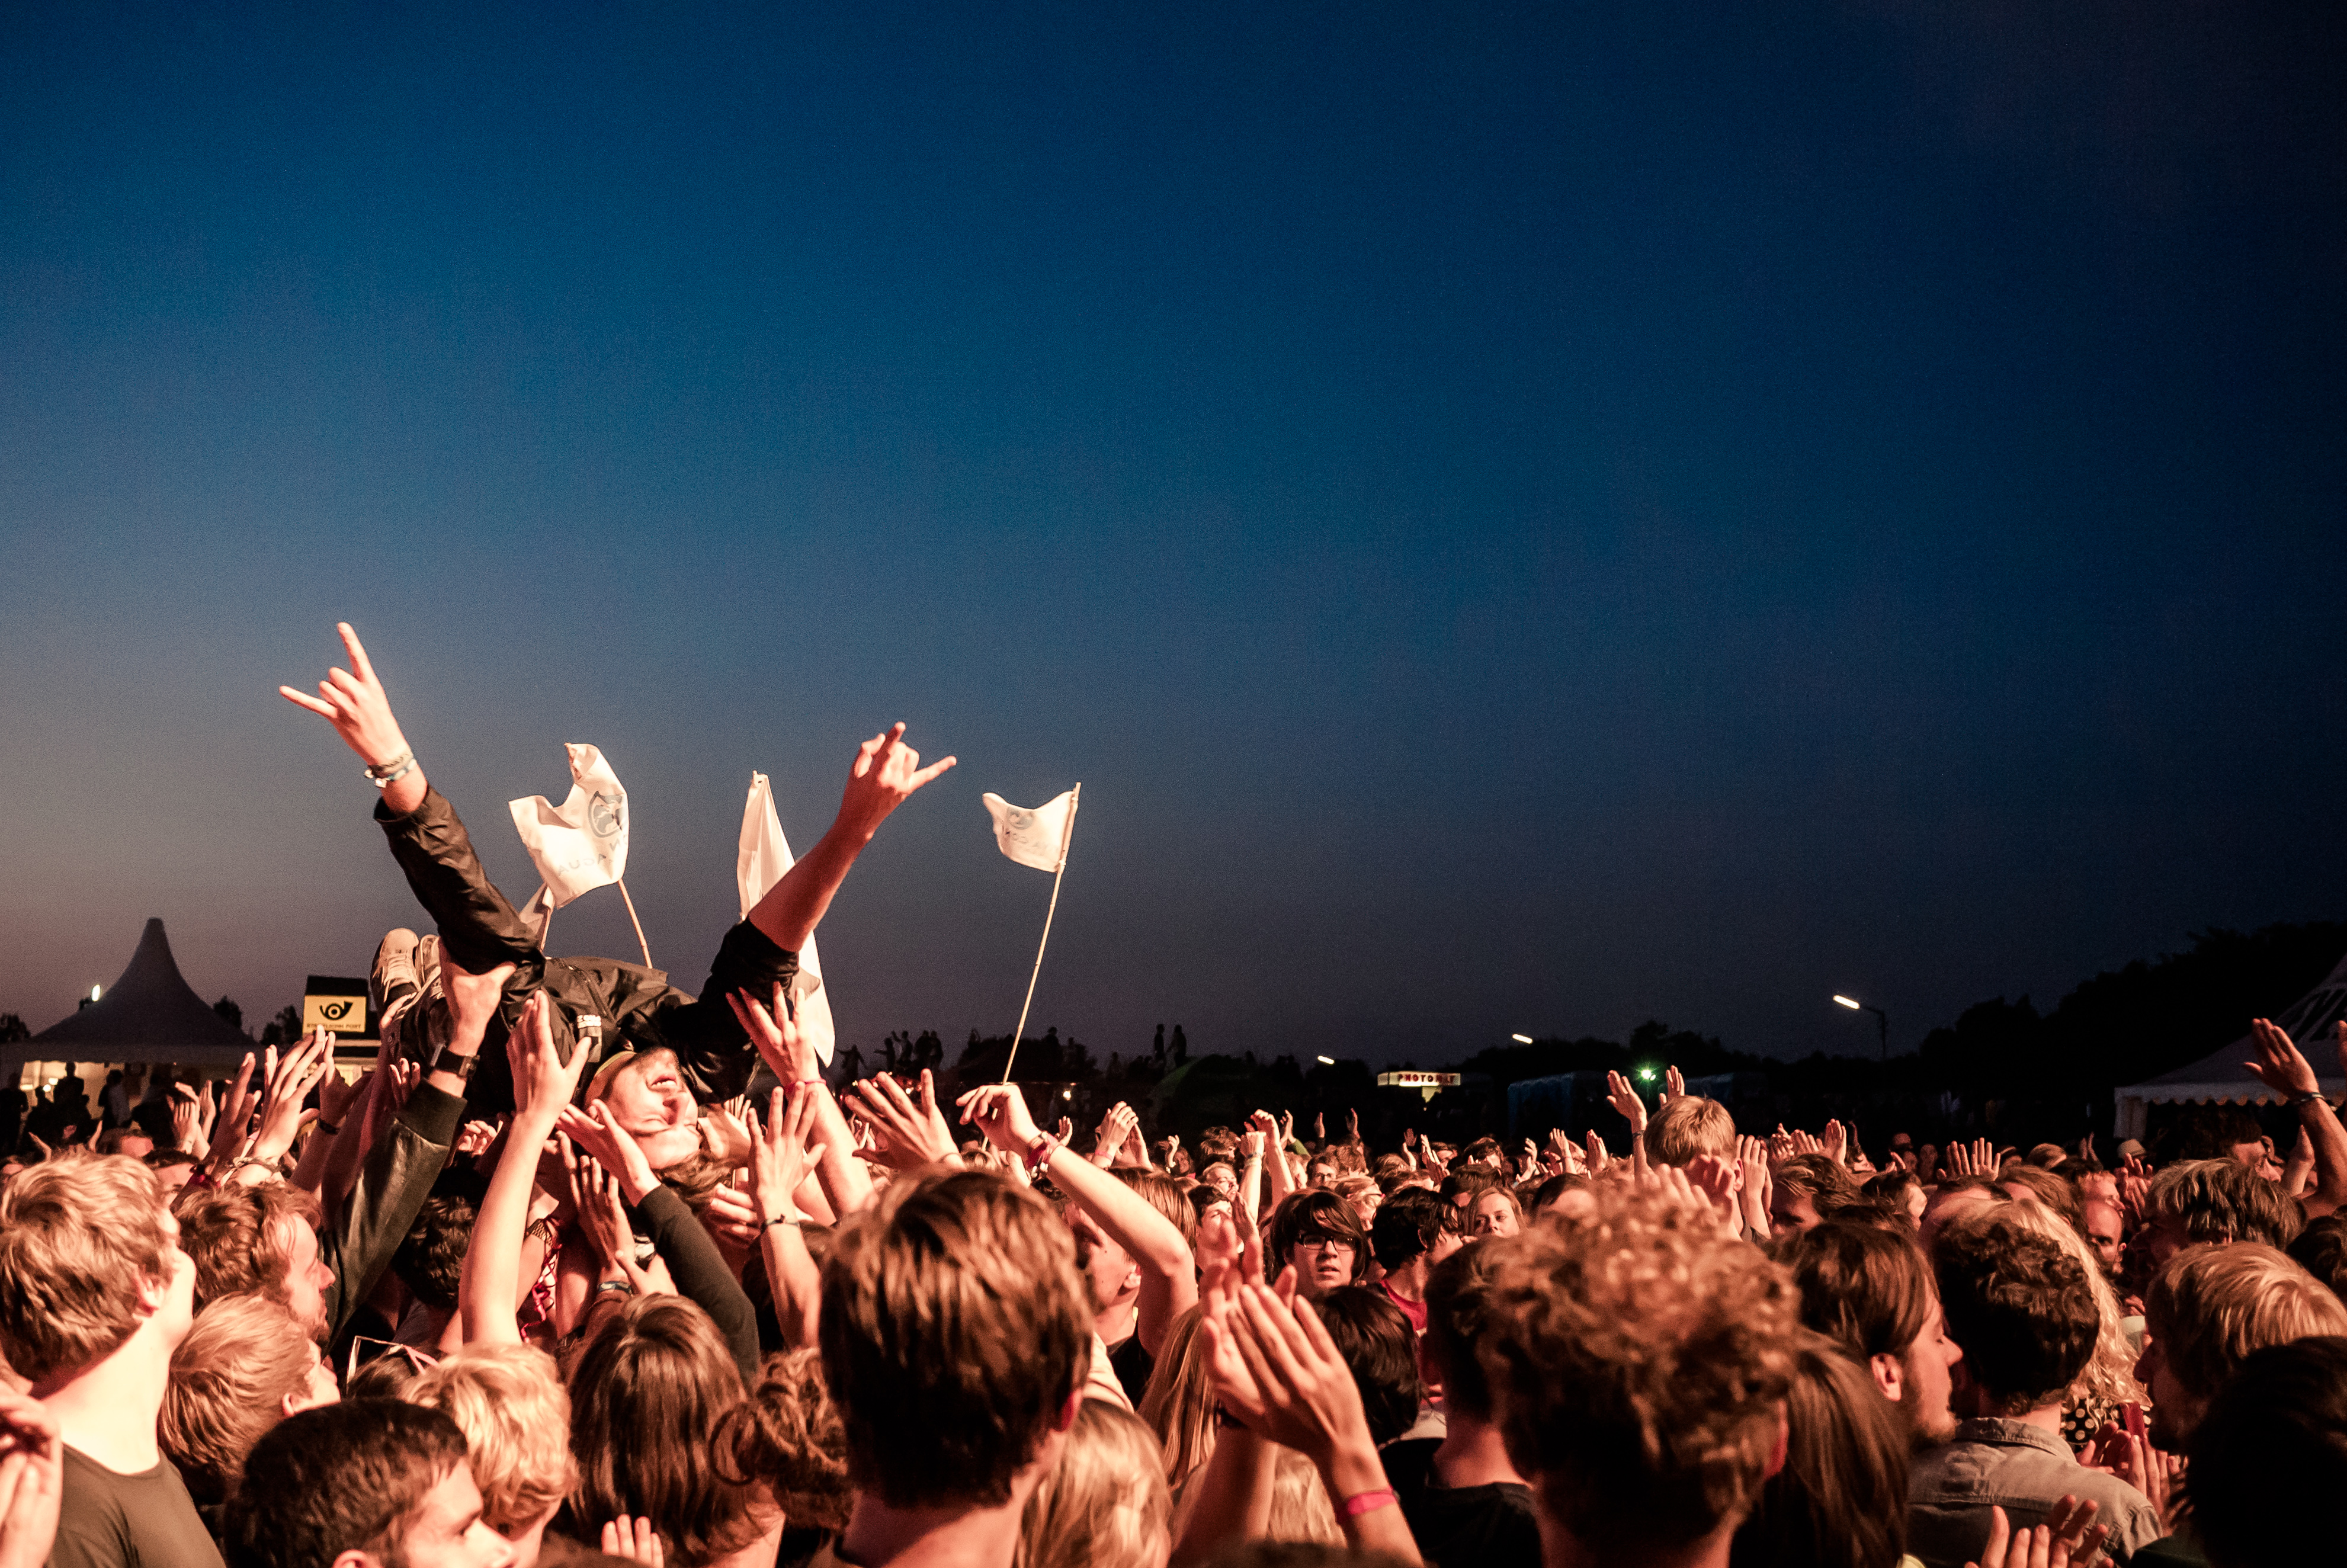 Crowdsurfing at the Tocotronic show, 2012, Crowd, Festival, Hamburg, HQ Photo